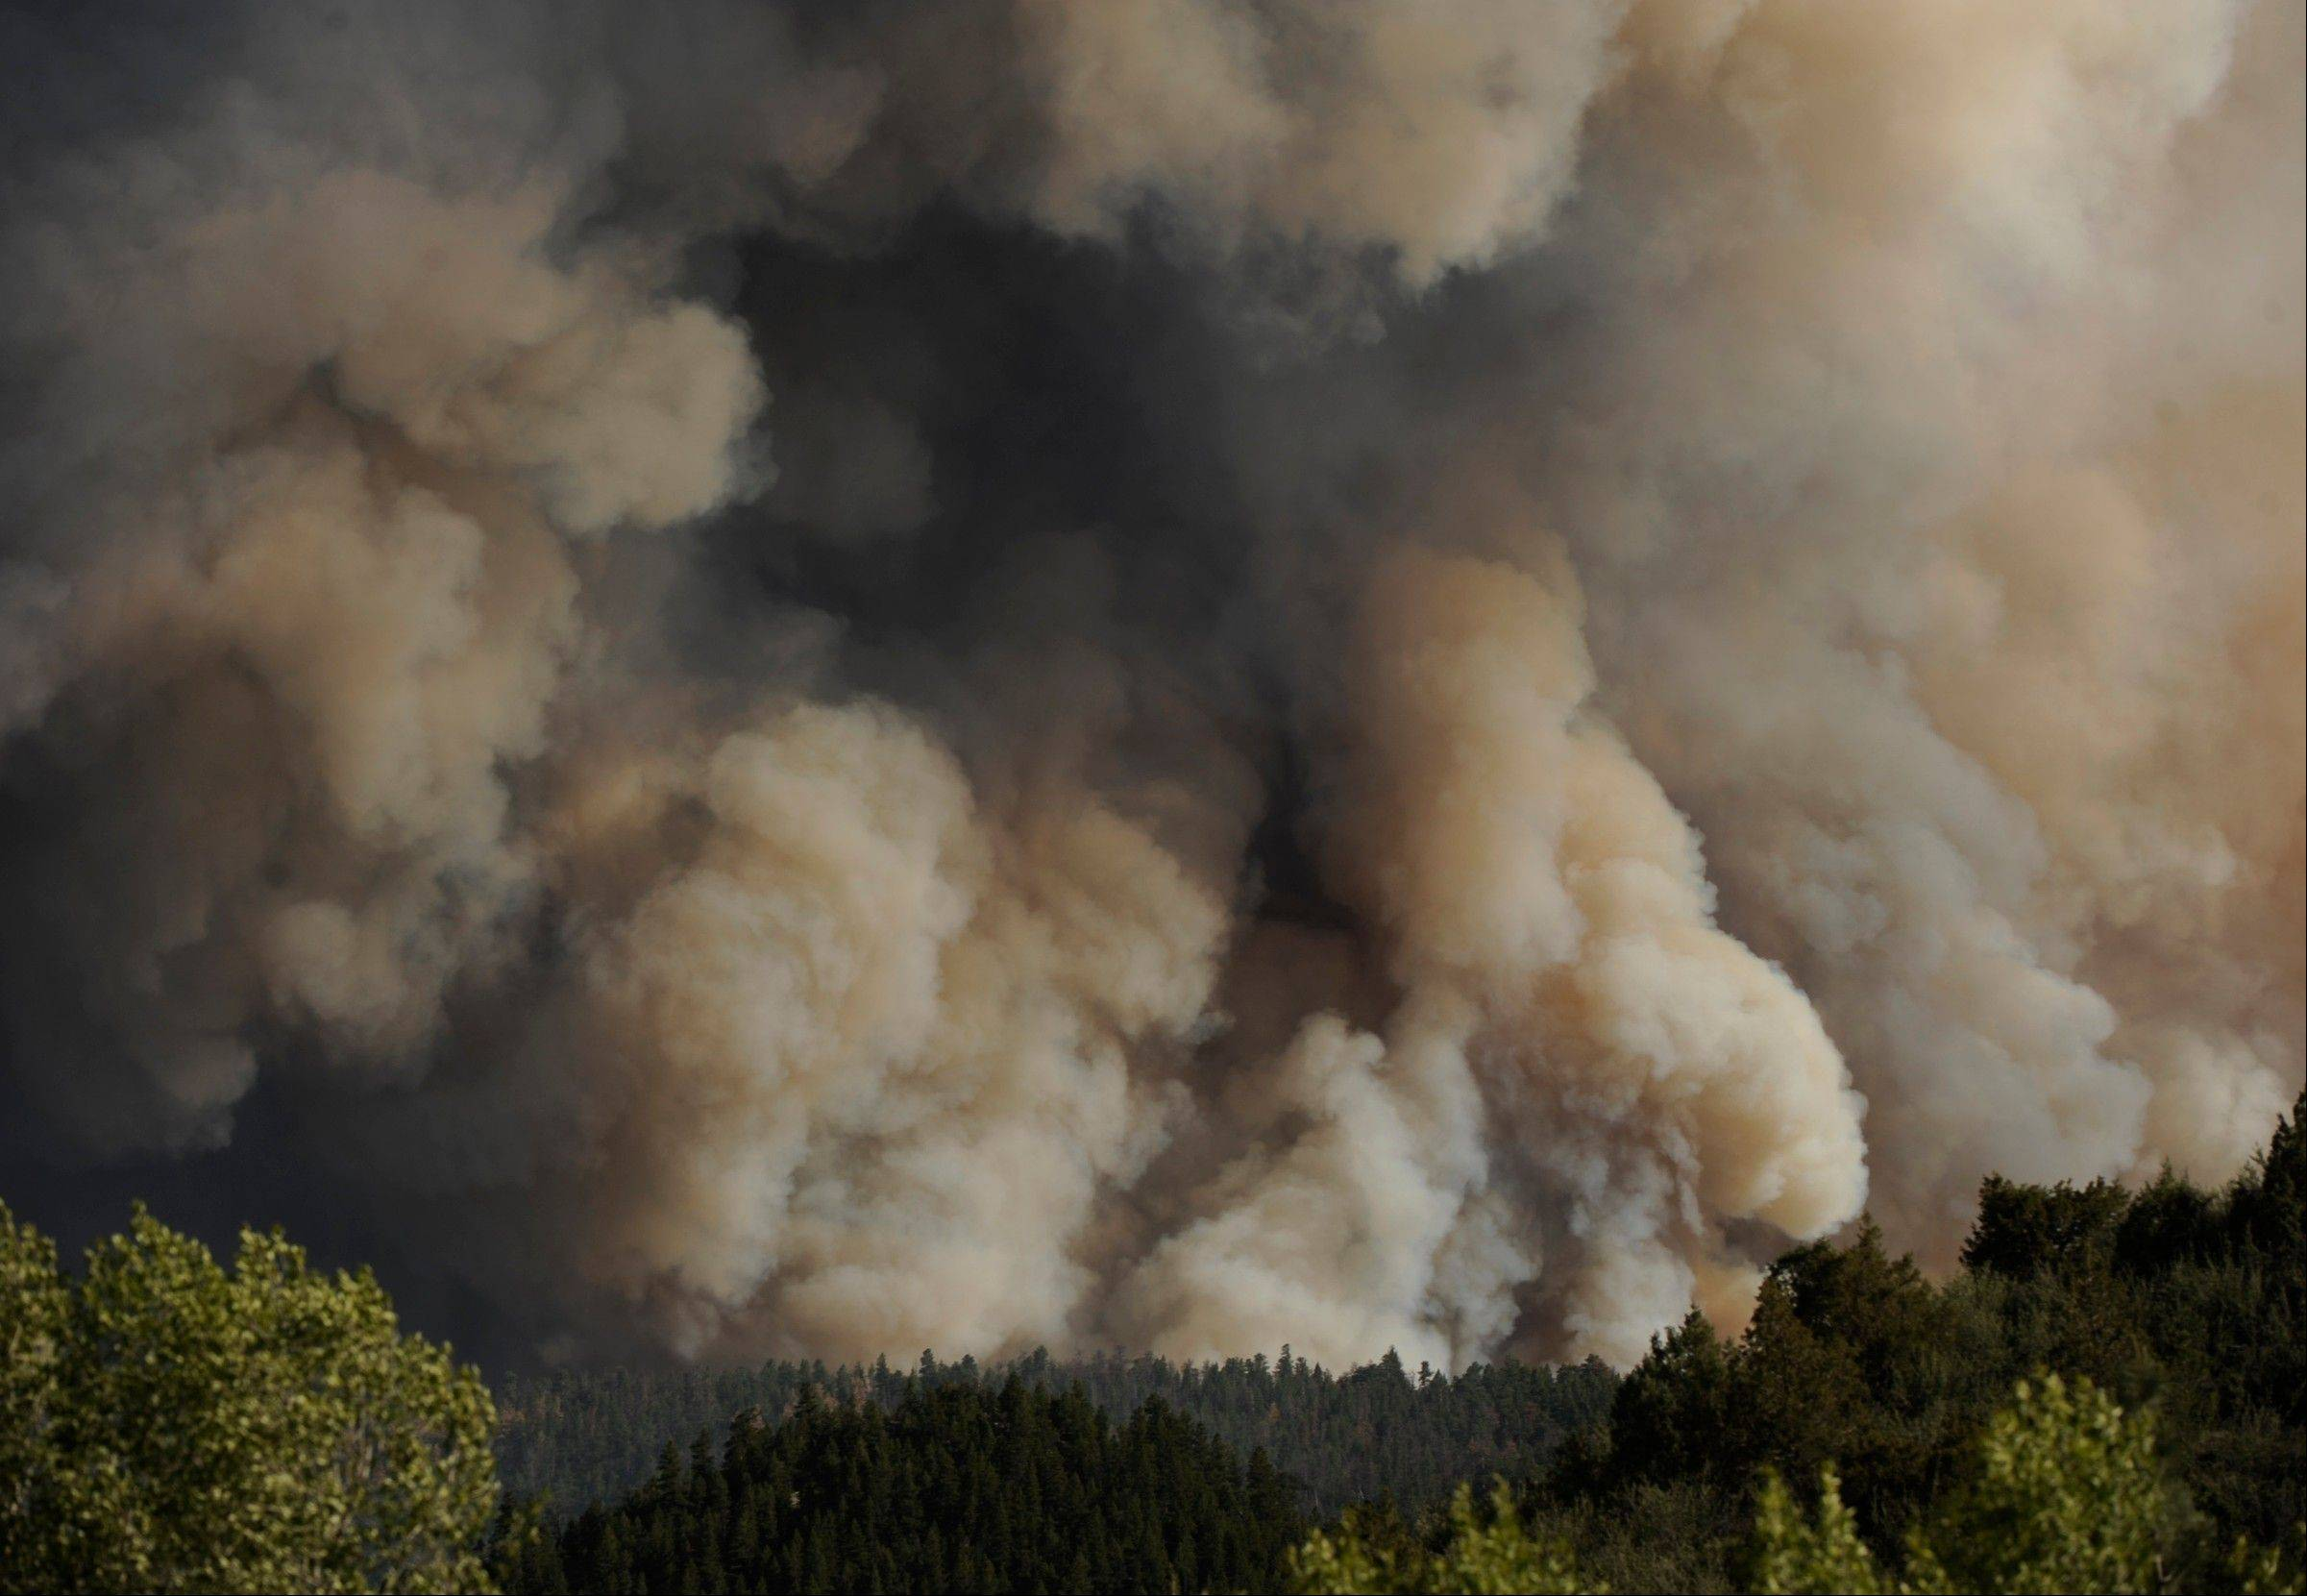 In this Saturday, June 9, 2012 photo, thick smoke rises from the burning fire south of the Cache La Poudre River at the intersection of Larimer County Road 27 and Colorado Highway 14, west of Fort Collins, Colo.